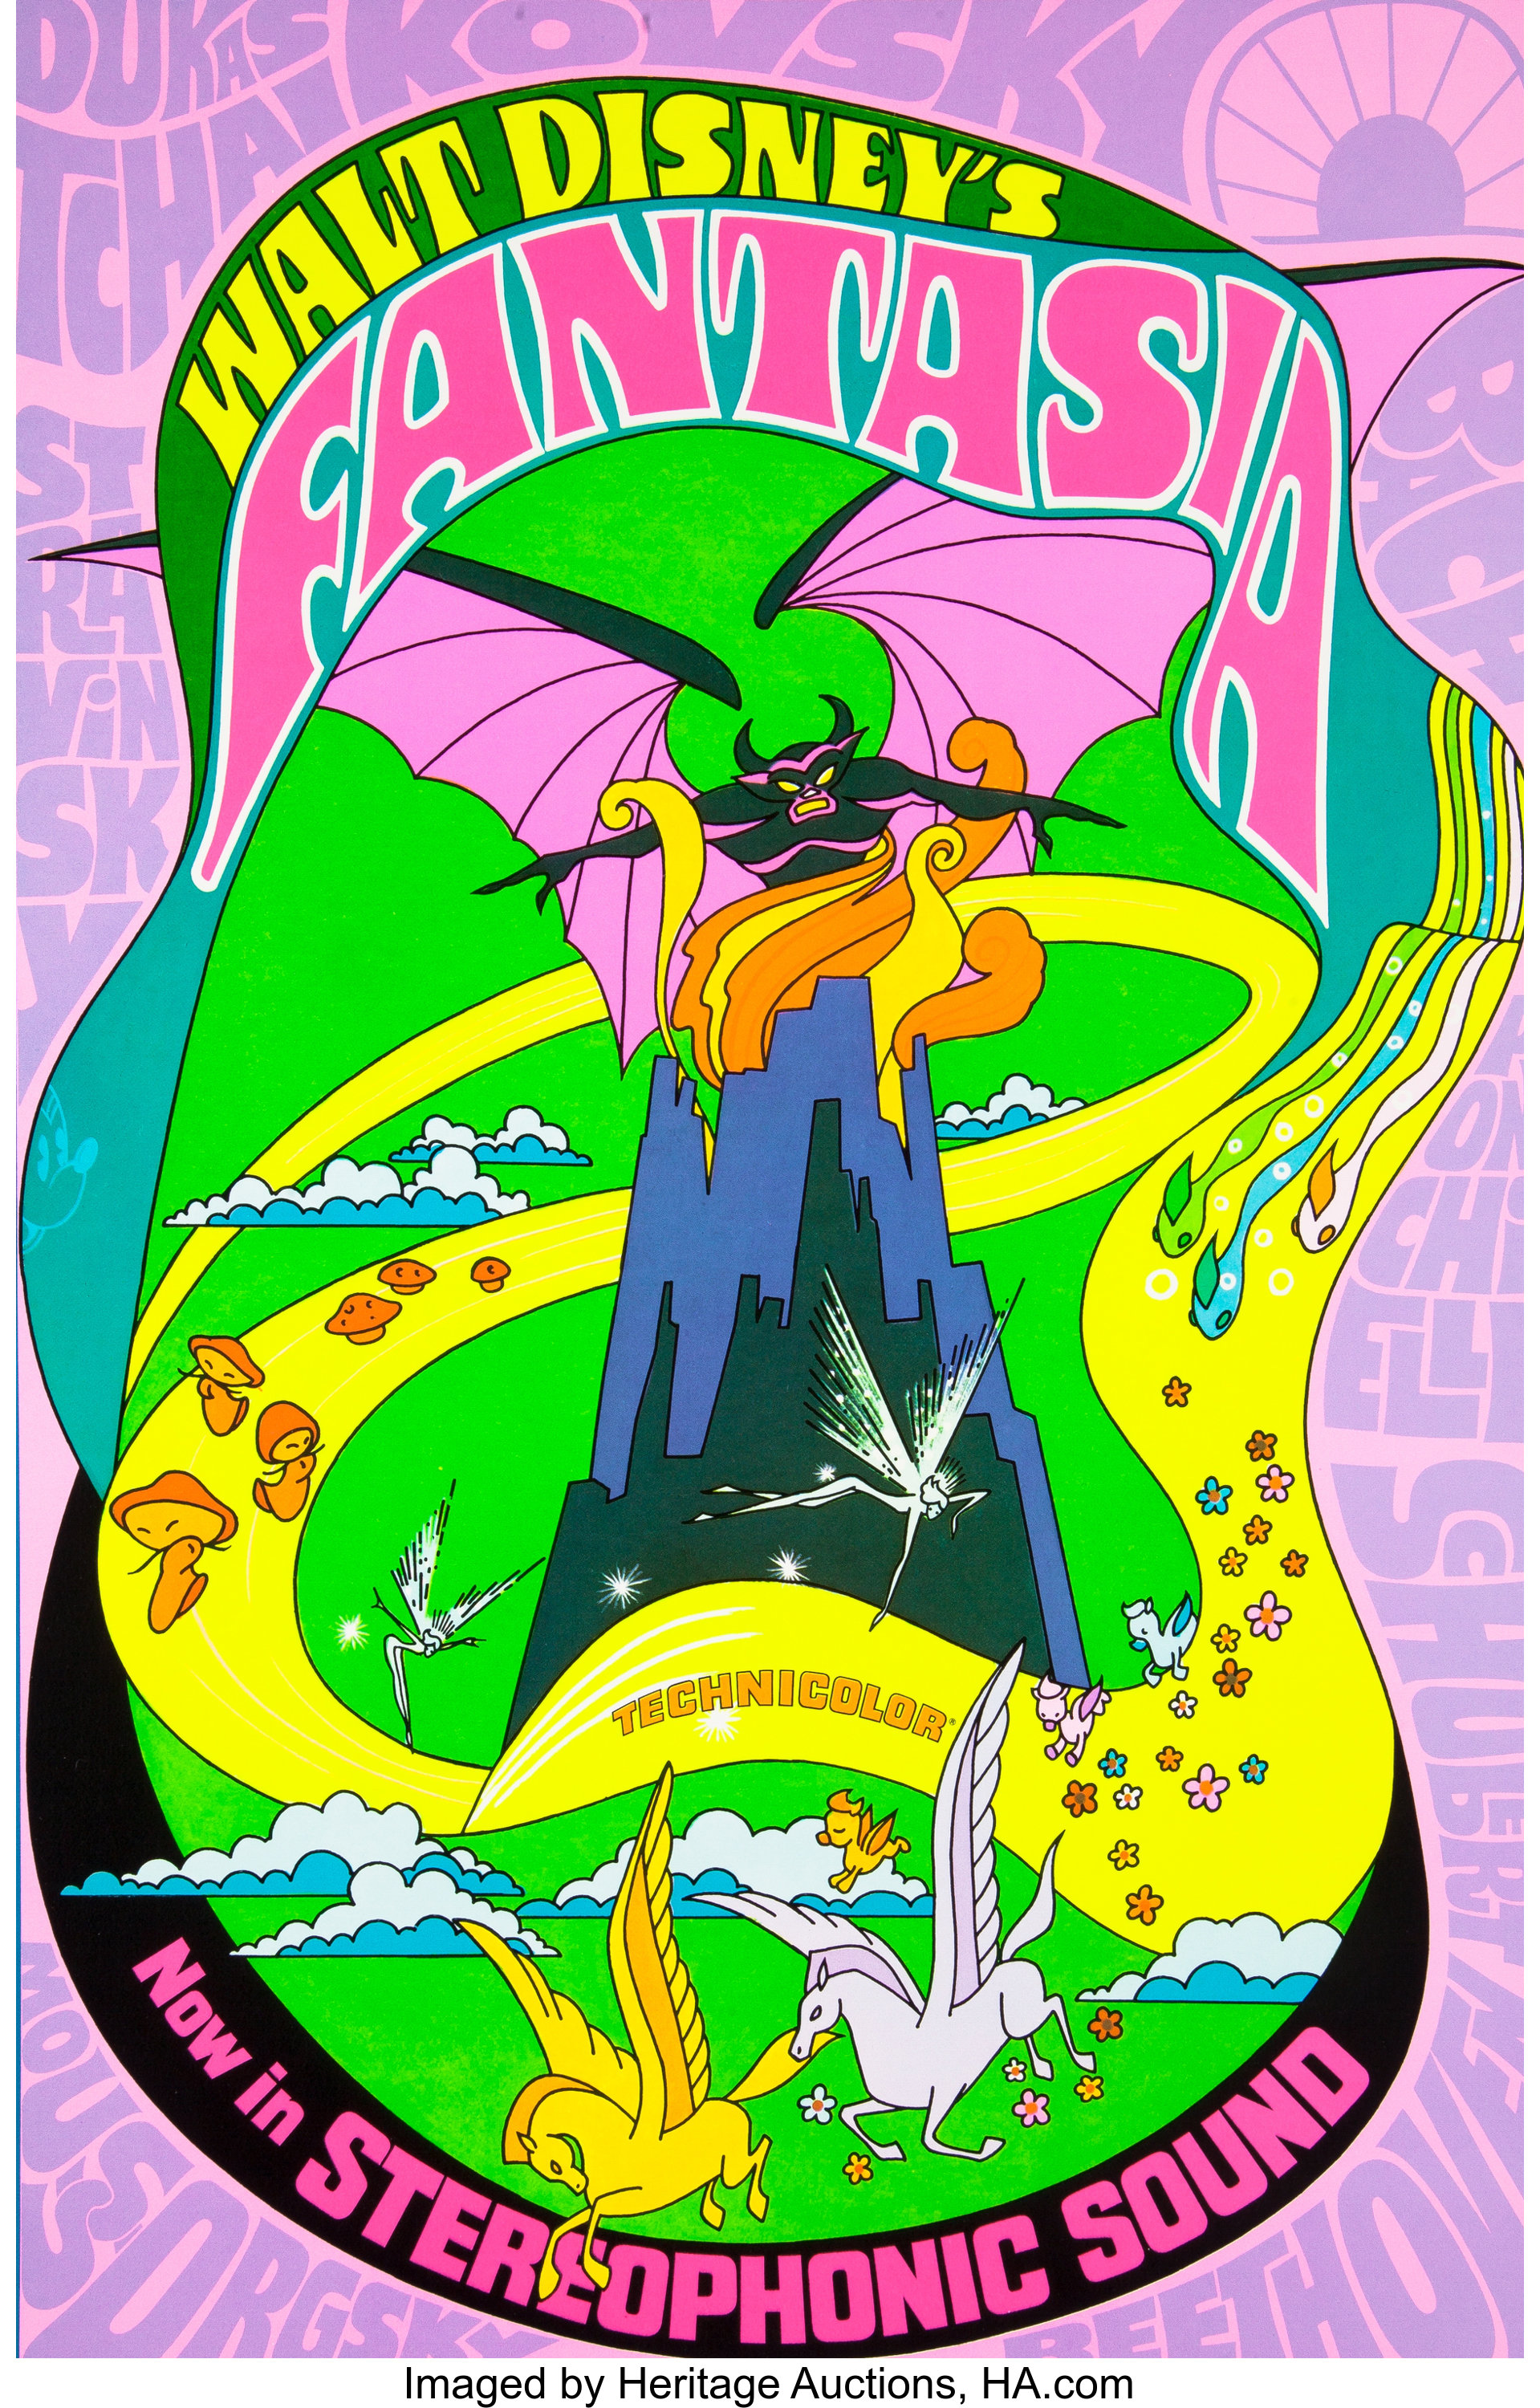 Fantasia Psychedelic Mini Poster And Handbill Group Walt Disney Lot 96182 Heritage Auctions